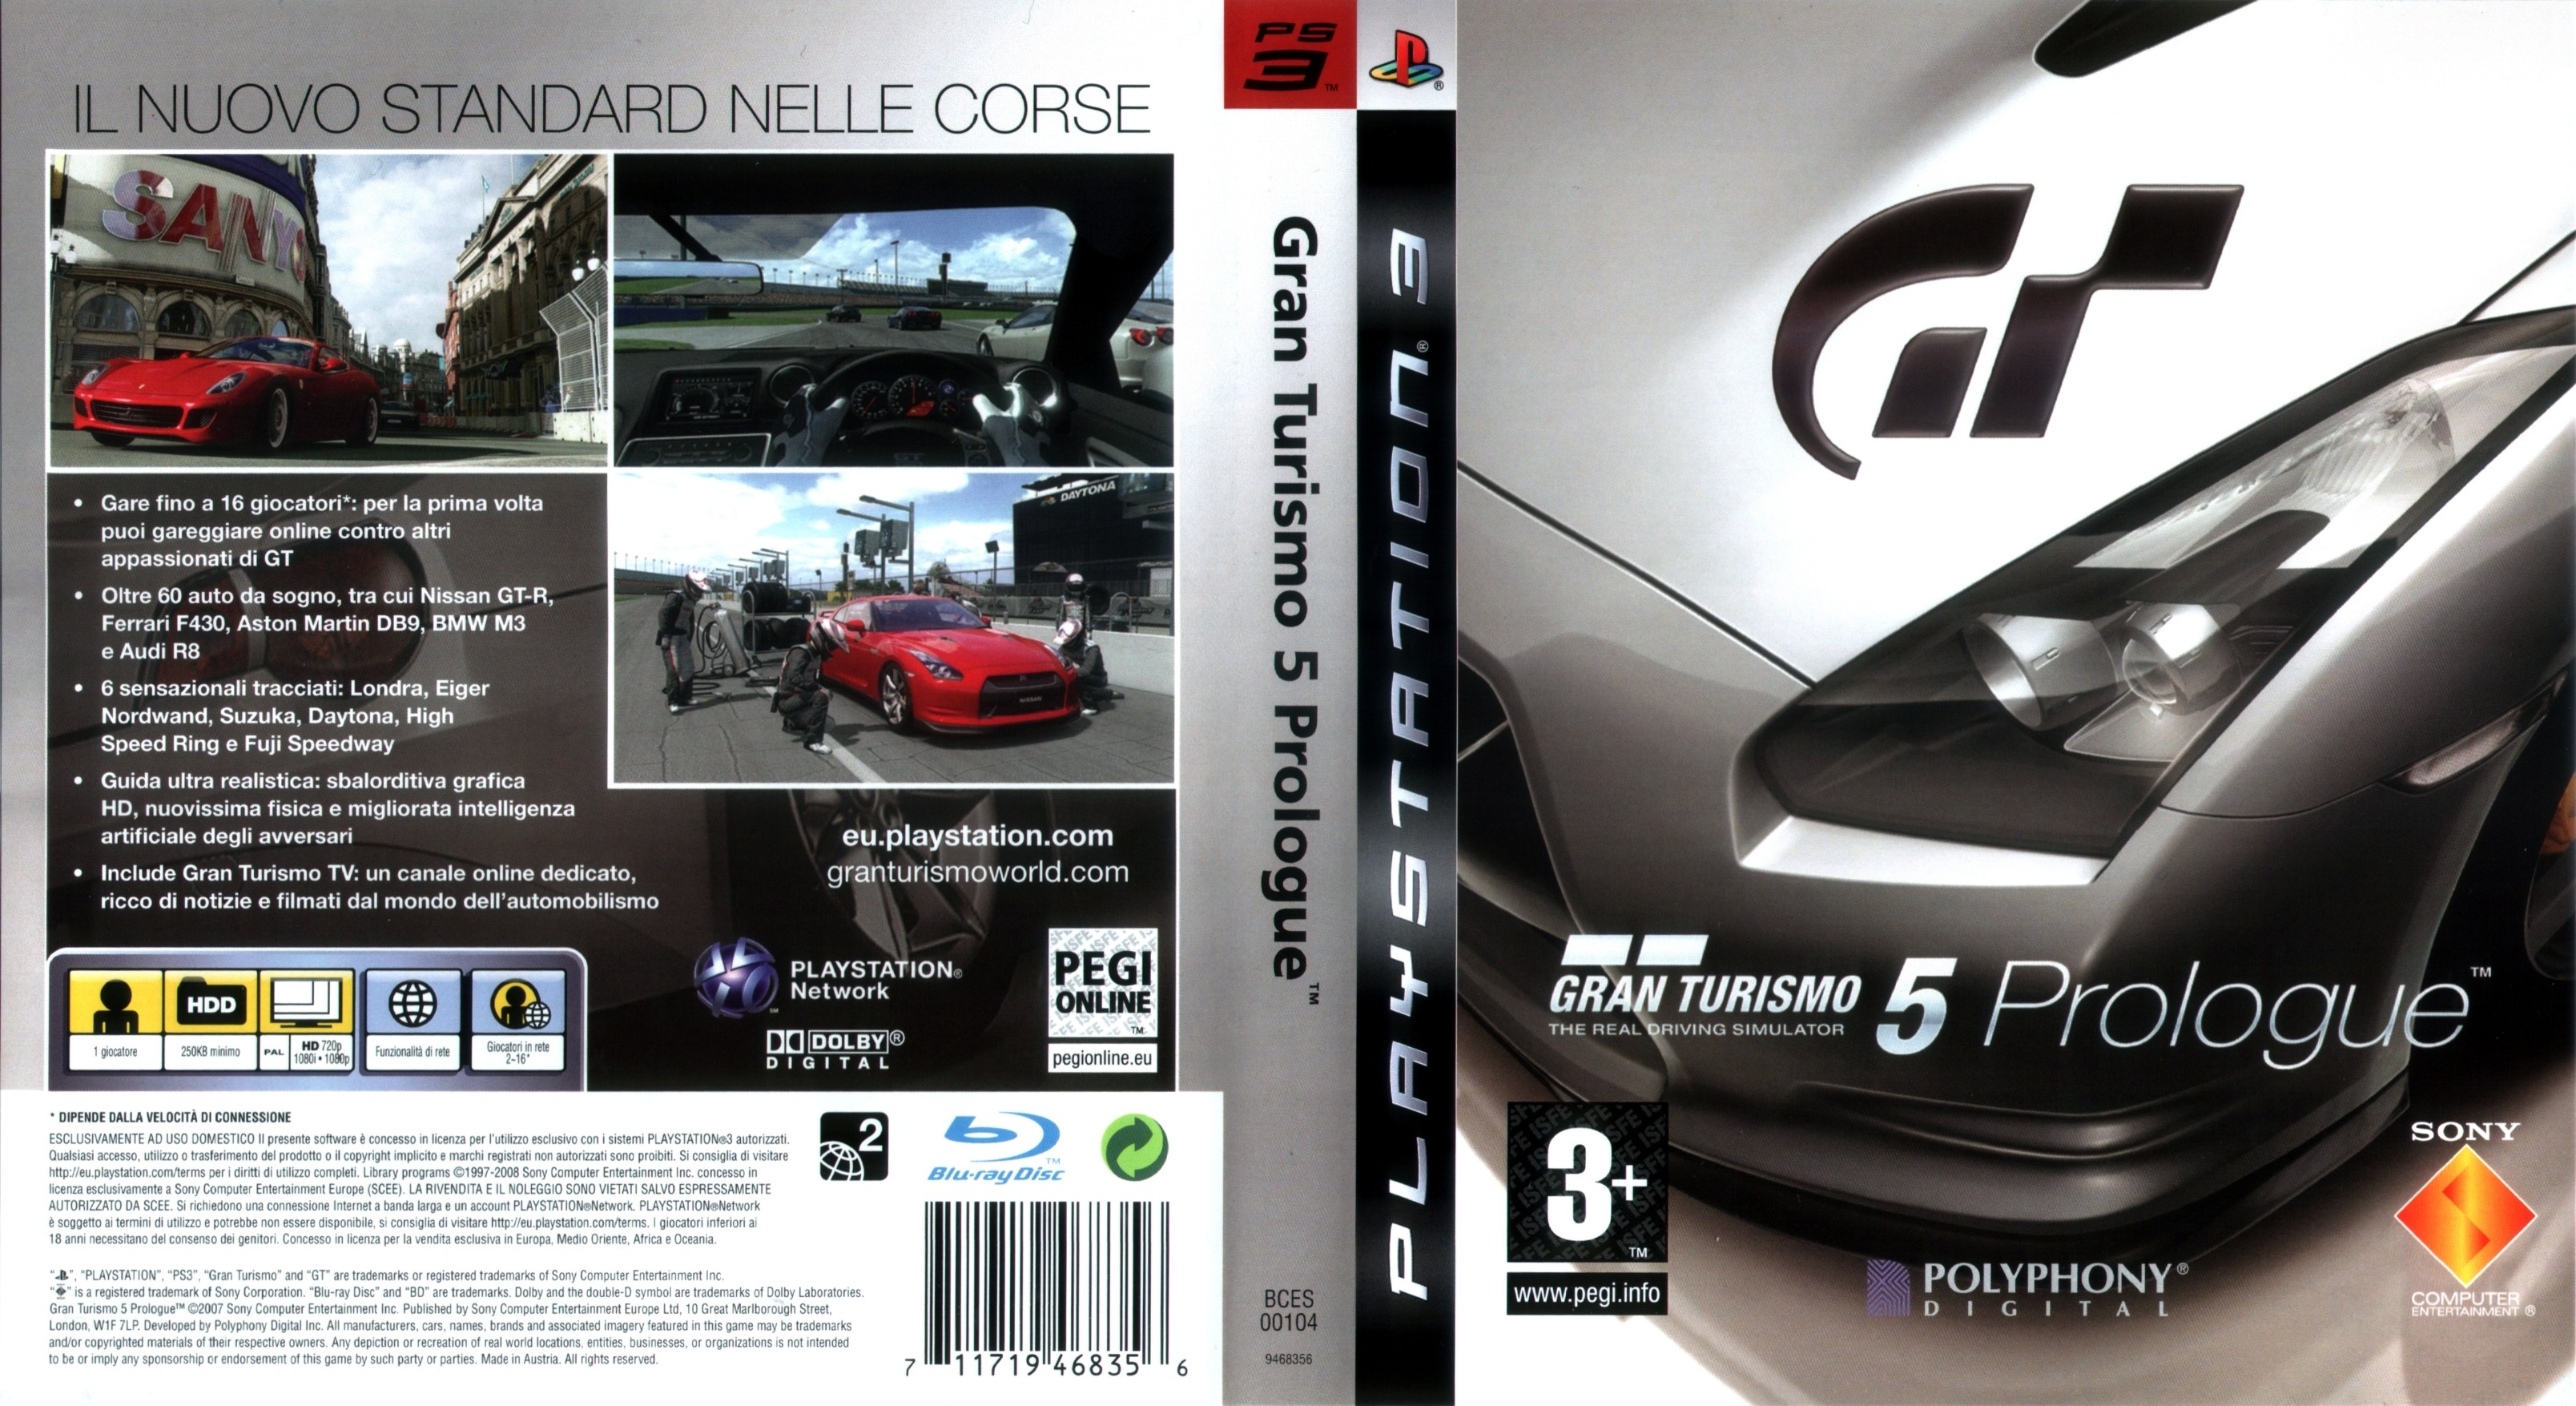 grand turismo 5 prologue ps3. Black Bedroom Furniture Sets. Home Design Ideas